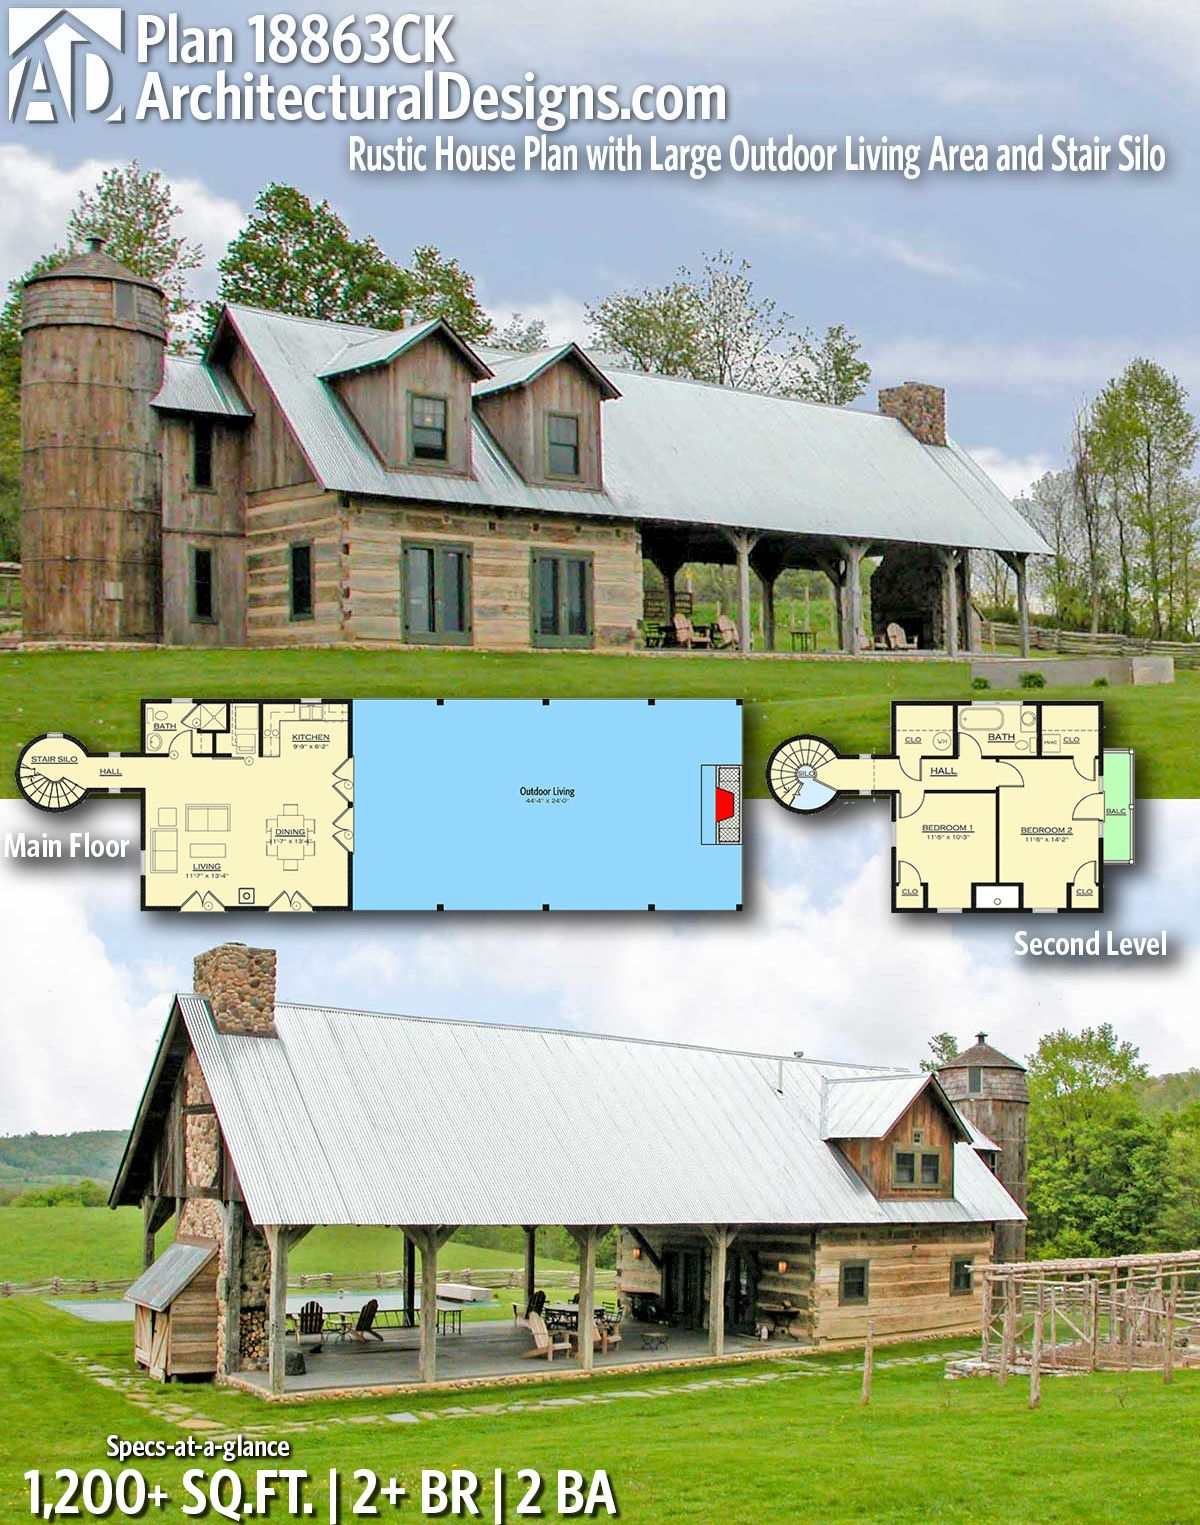 Plan 18863ck Rustic House Plan With Large Outdoor Living Area And Stair Silo Rustic House Plans Barn House Plans Rustic House